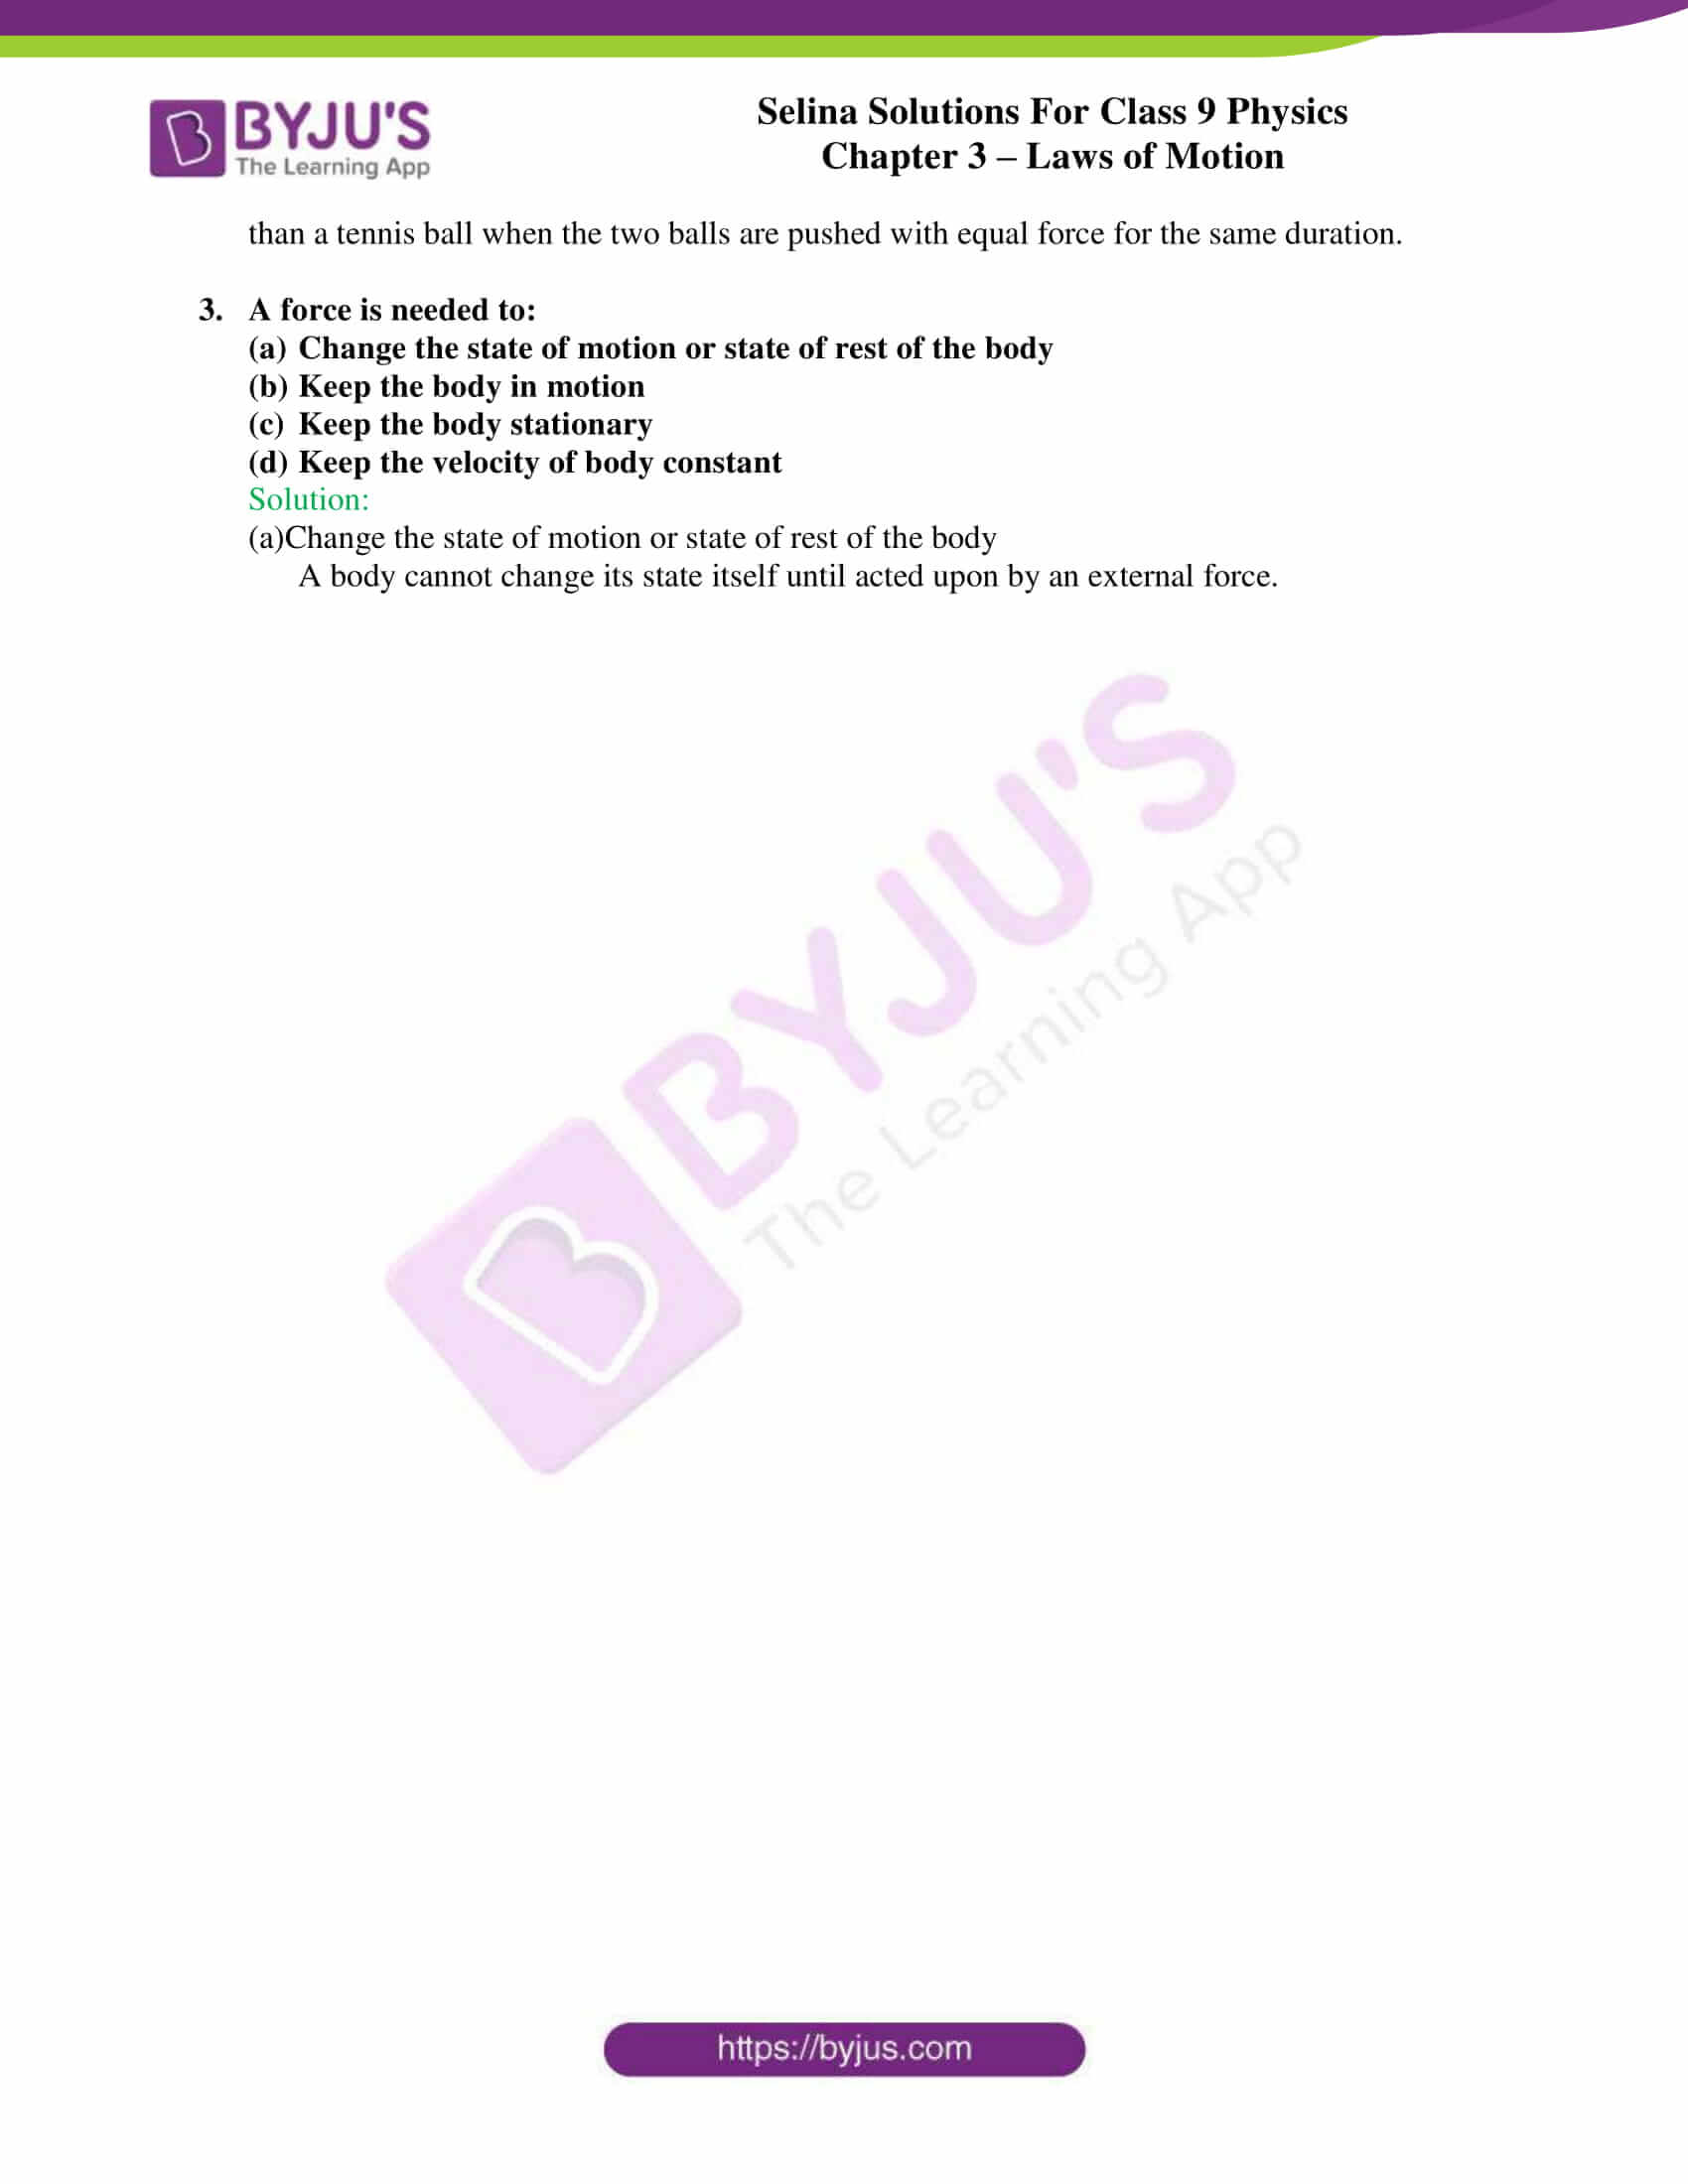 selina solutions class 9 physics chapter 3 Laws of Motion part 09